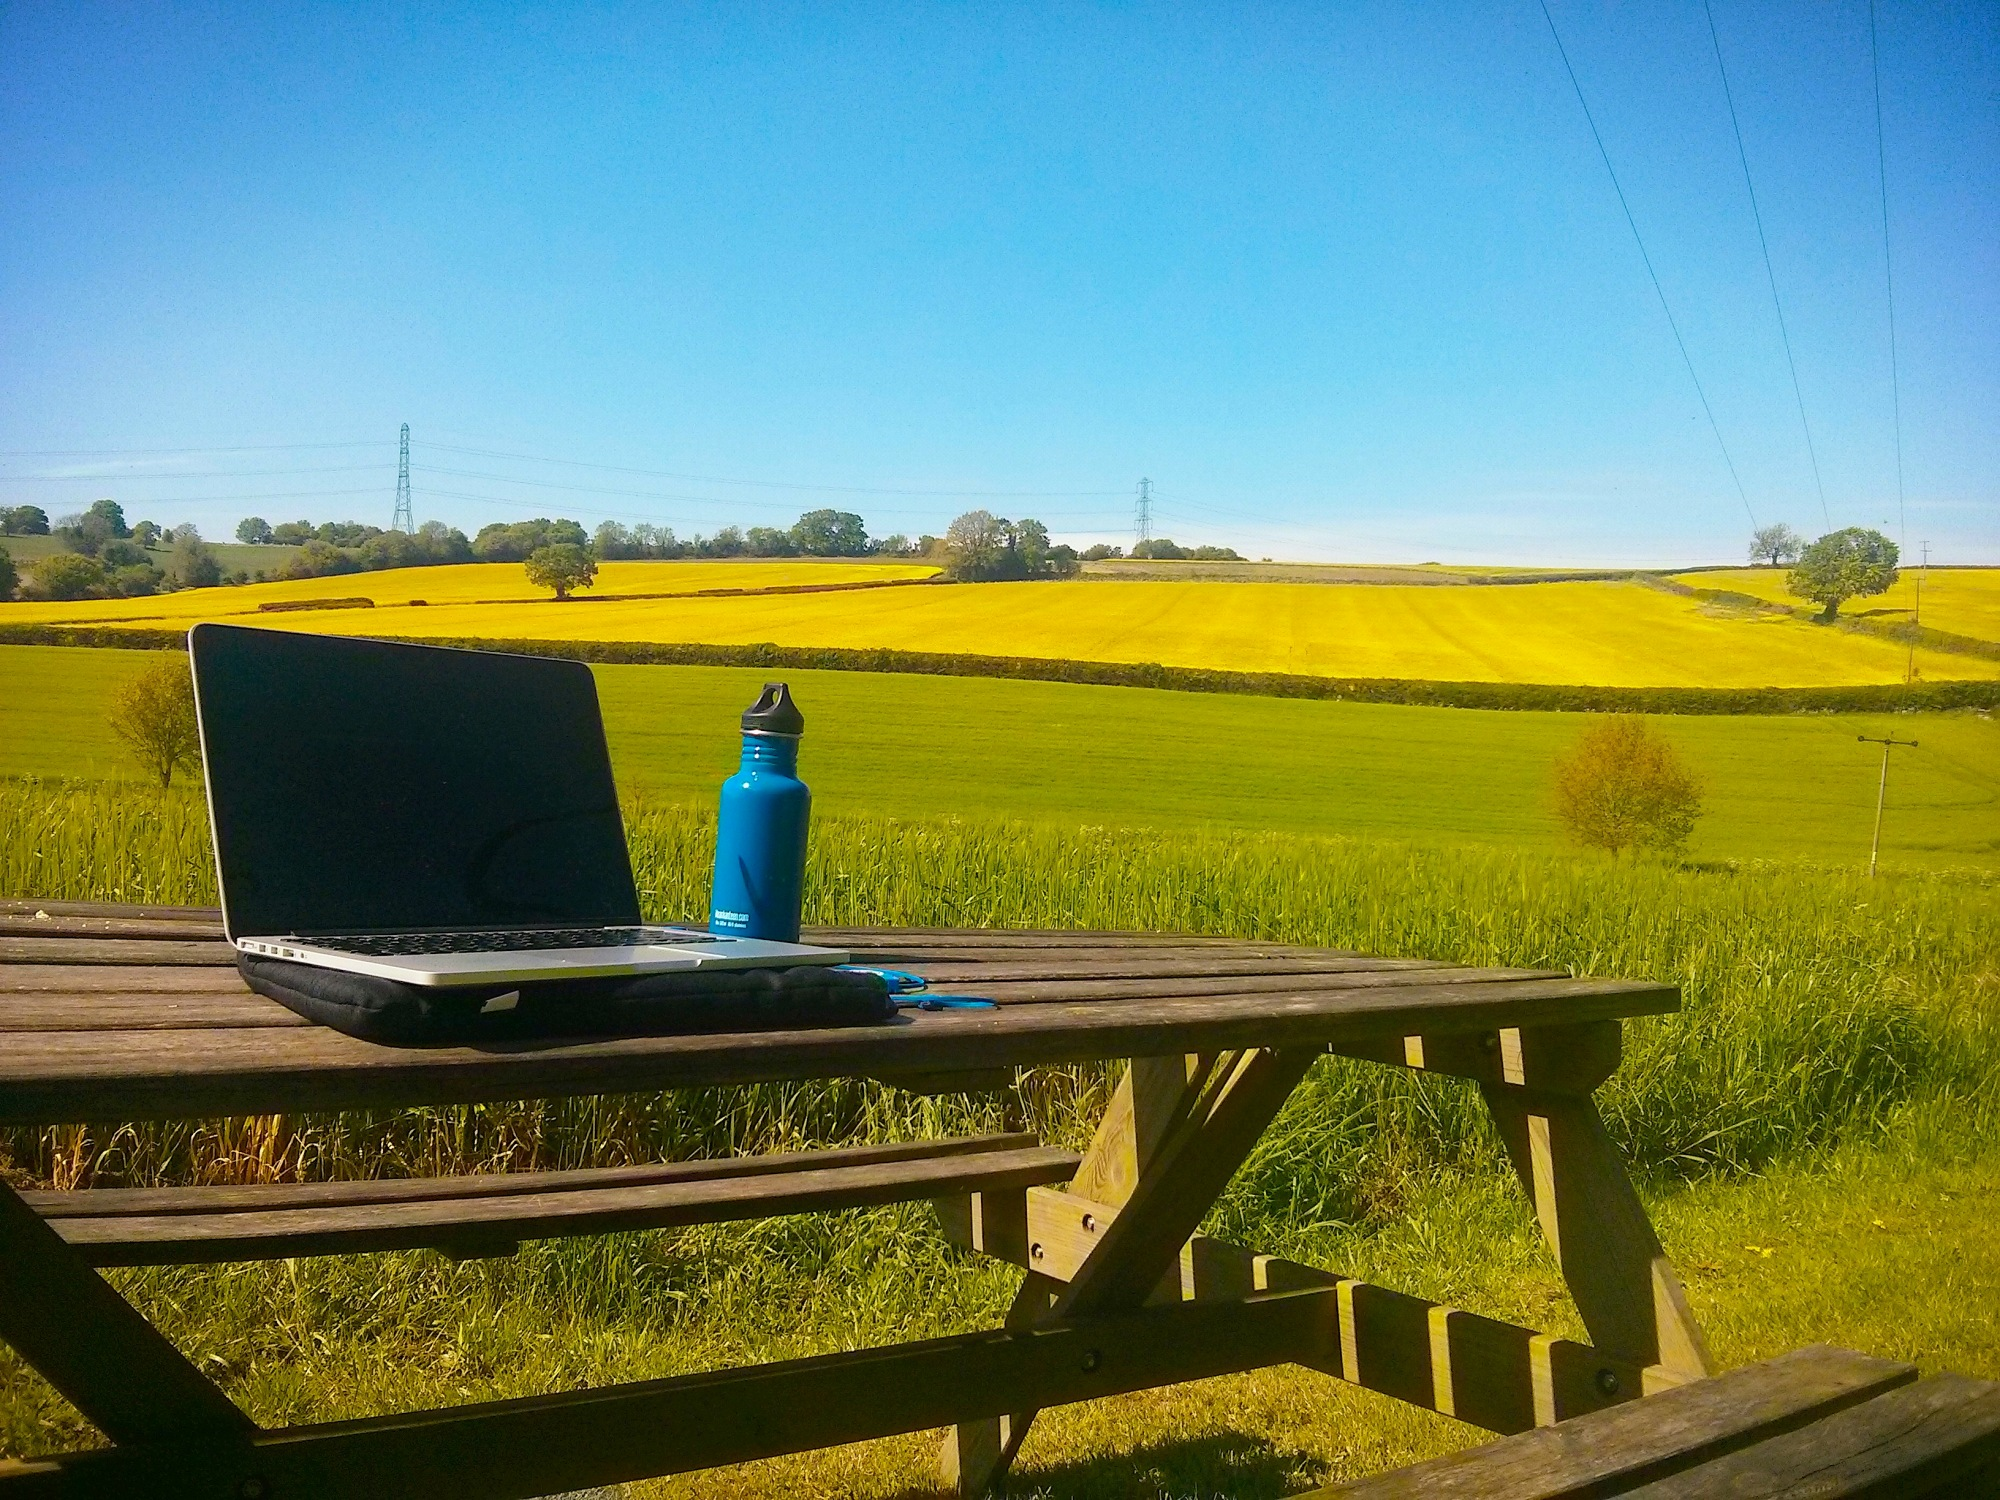 View across green and yellow fields with blue sky. A laptop sits on a table in the foreground.